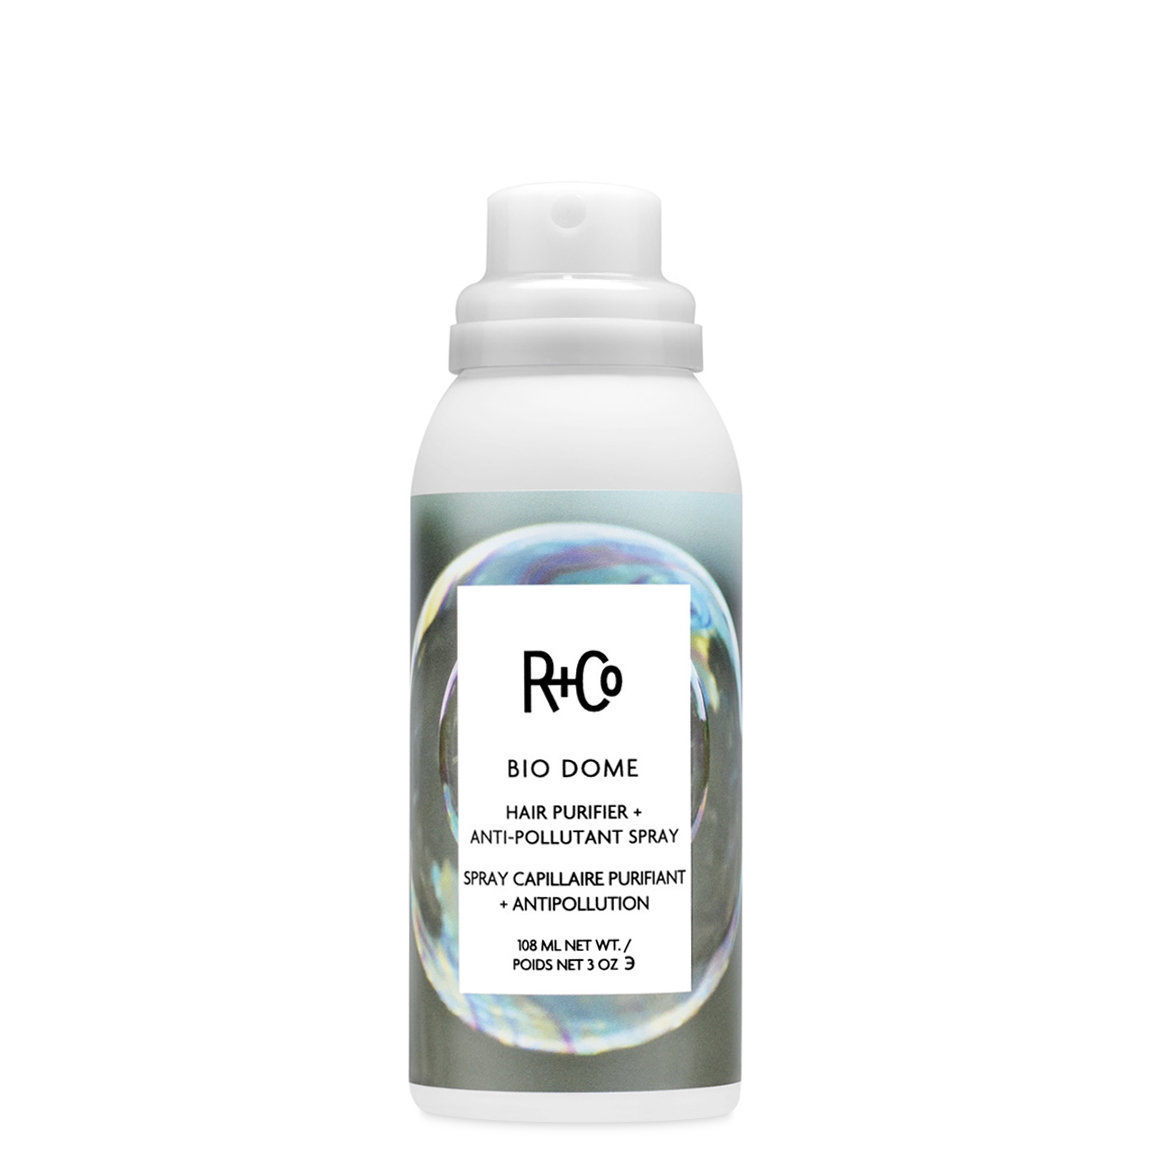 R+Co Bio Dome Hair Purifier + Anti Pollutant Spray alternative view 1 - product swatch.